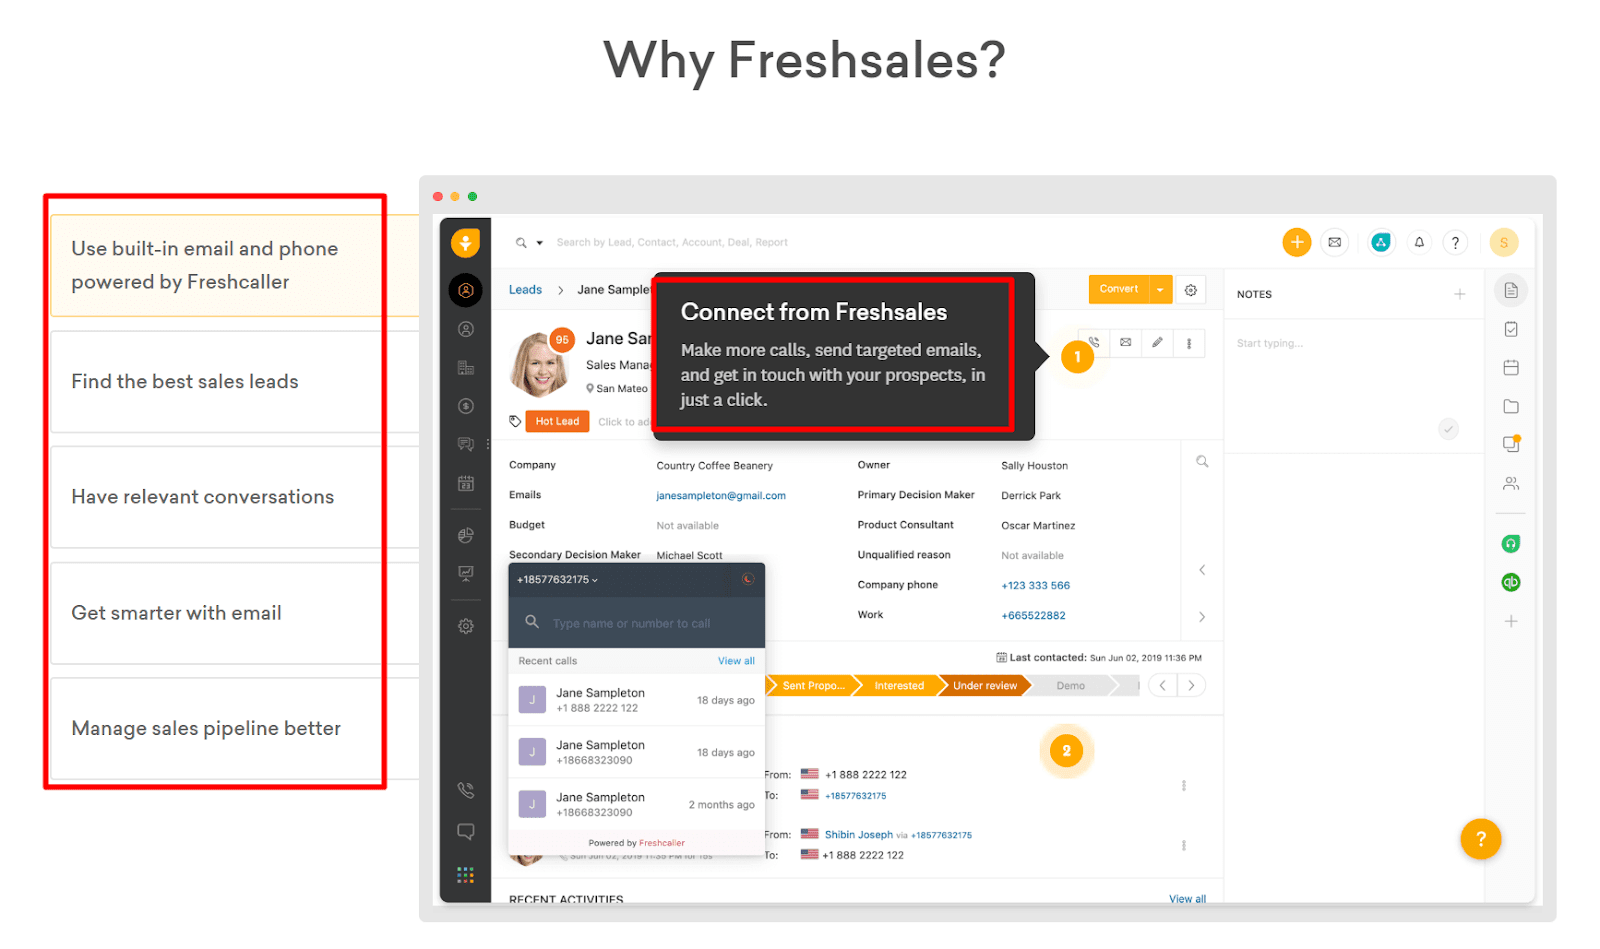 FRESHSALES product page